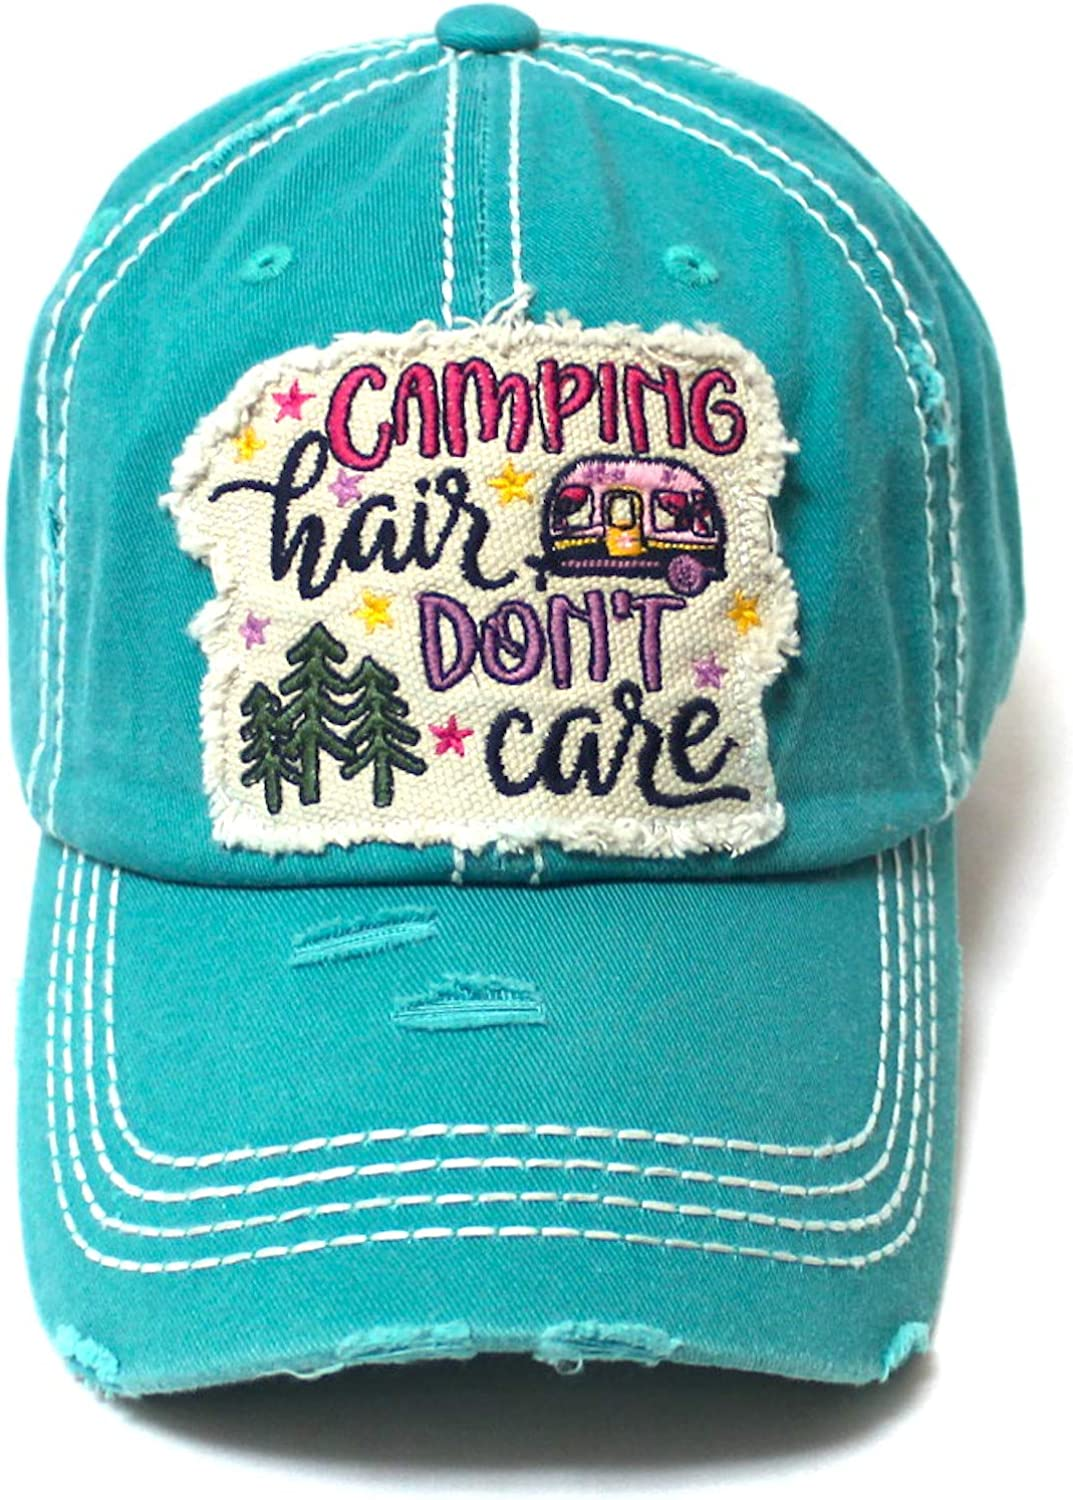 CAPS 'N VINTAGE Women's Distressed Baseball Cap Camping Hair Don't Care Patch Embroidery Monogram Hat